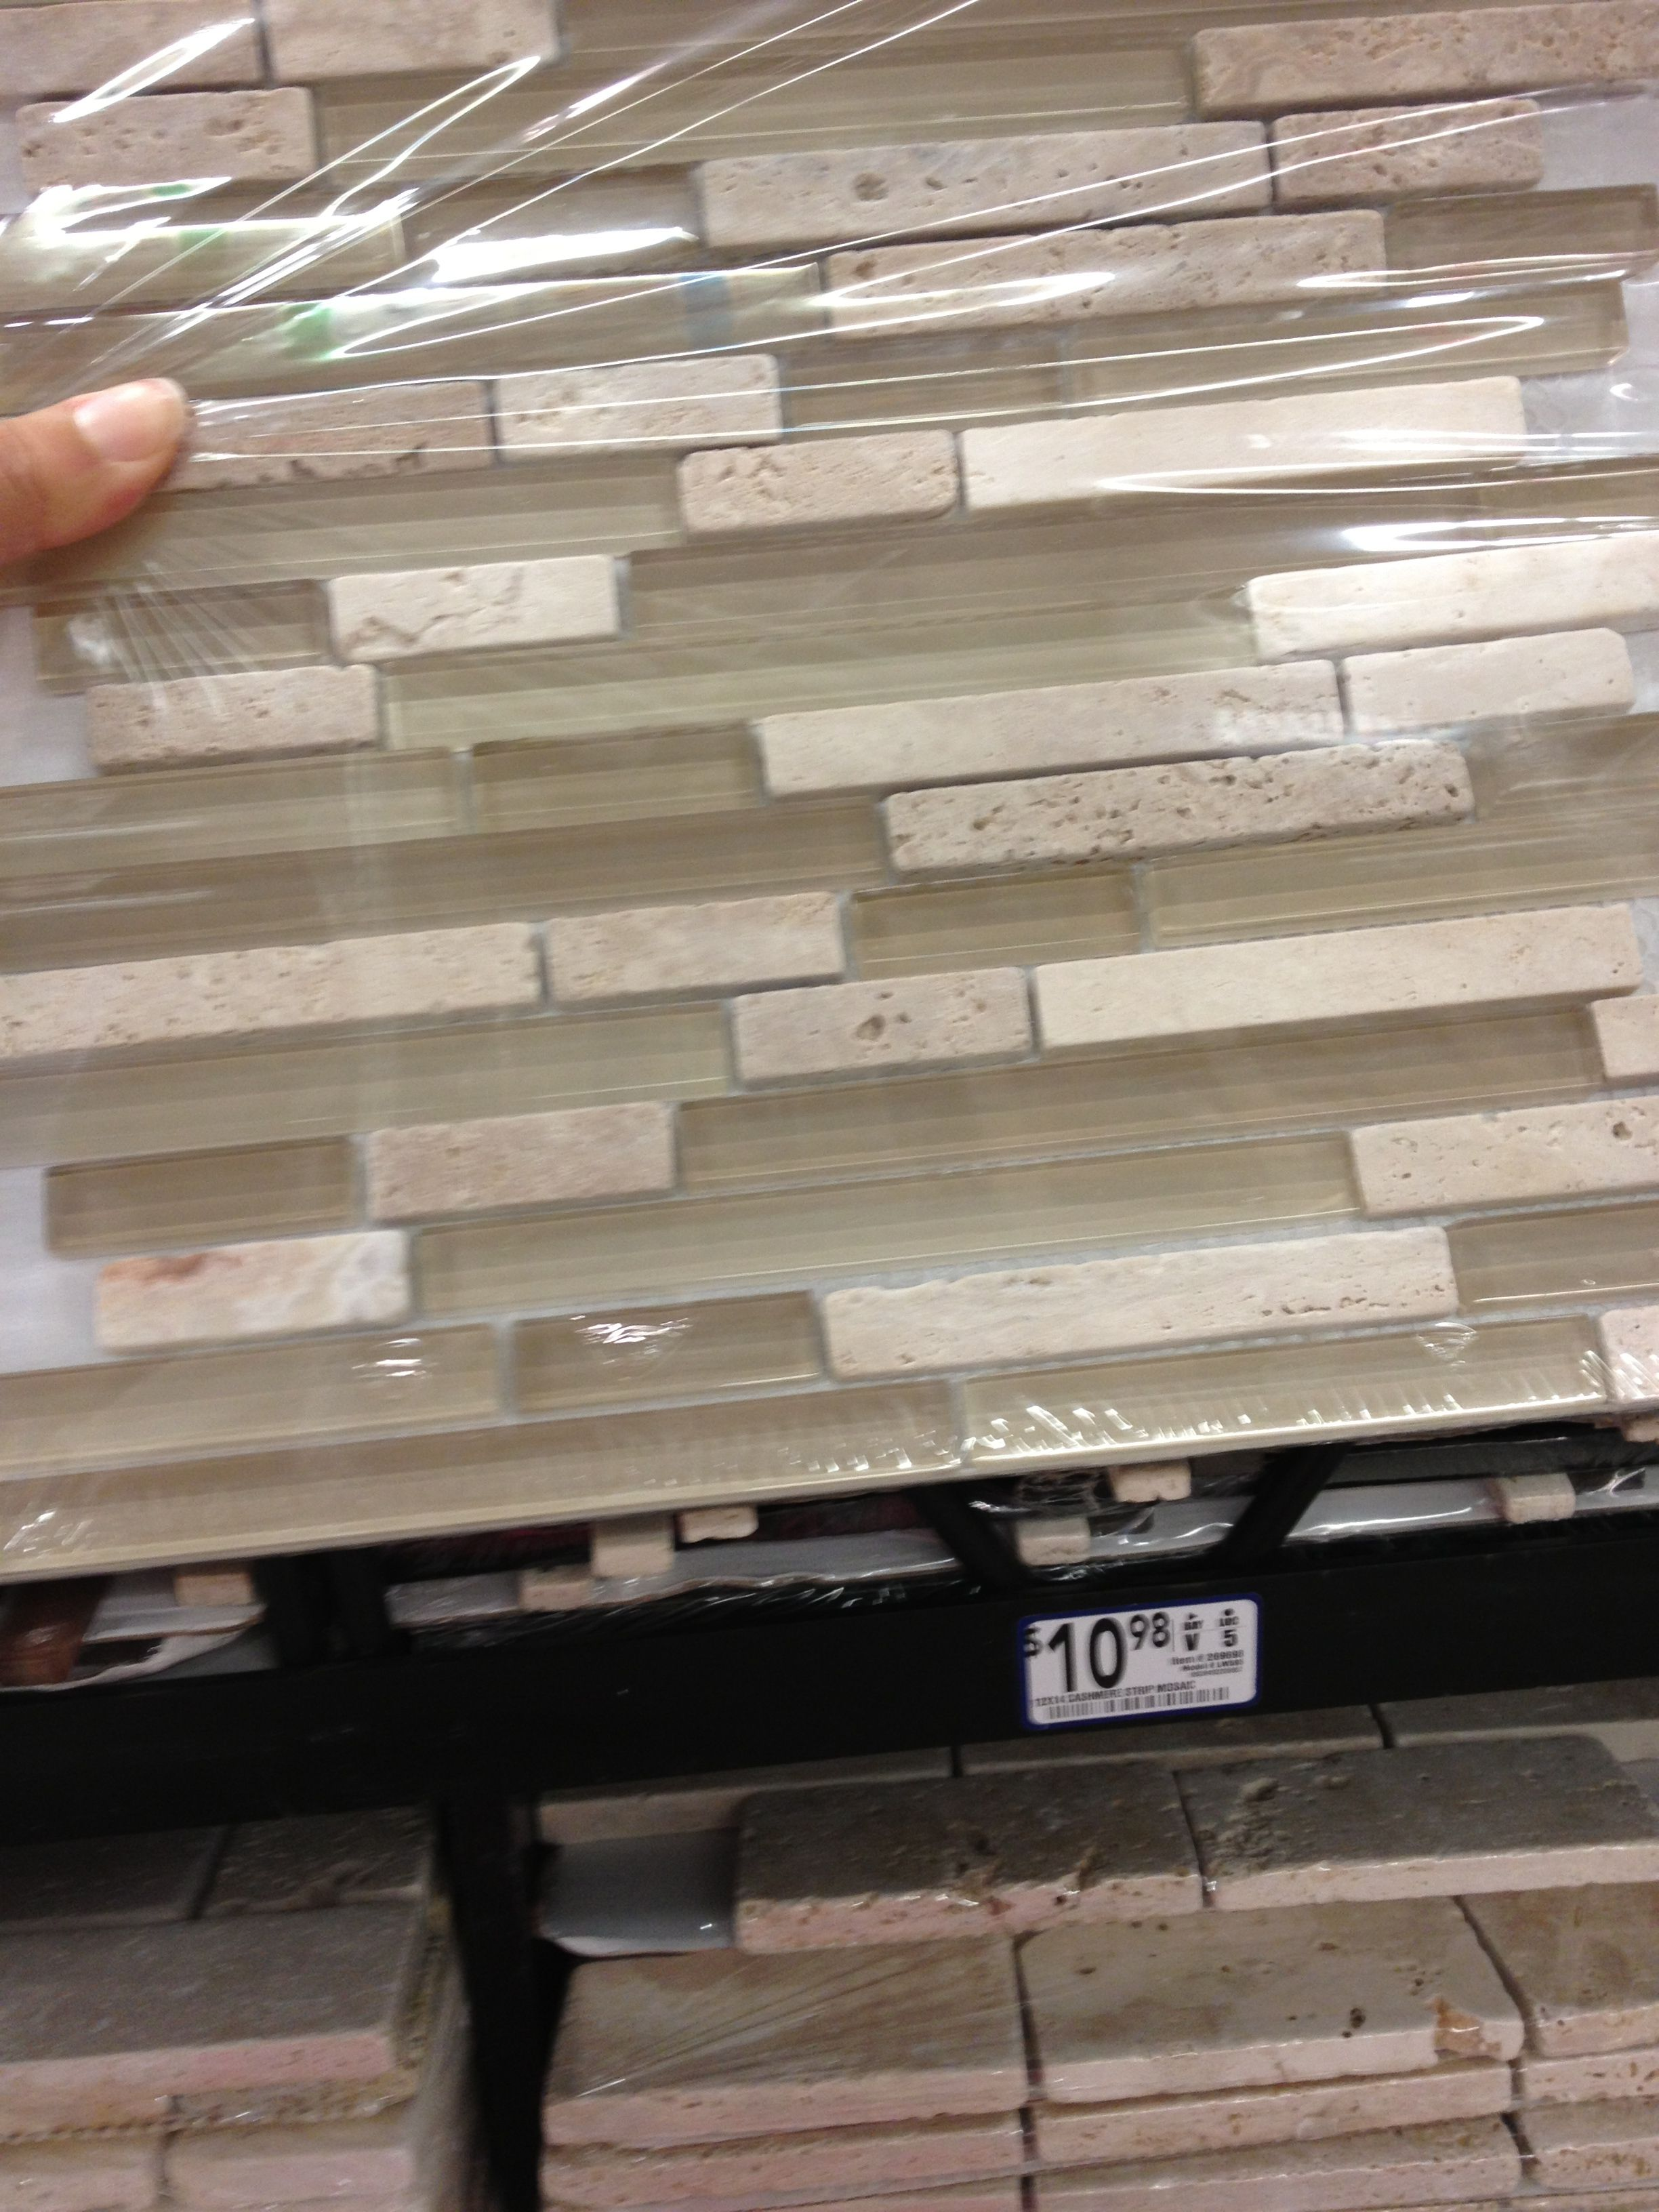 Kitchen backsplash tile at Lowes... Neutral | decor | Pinterest ...